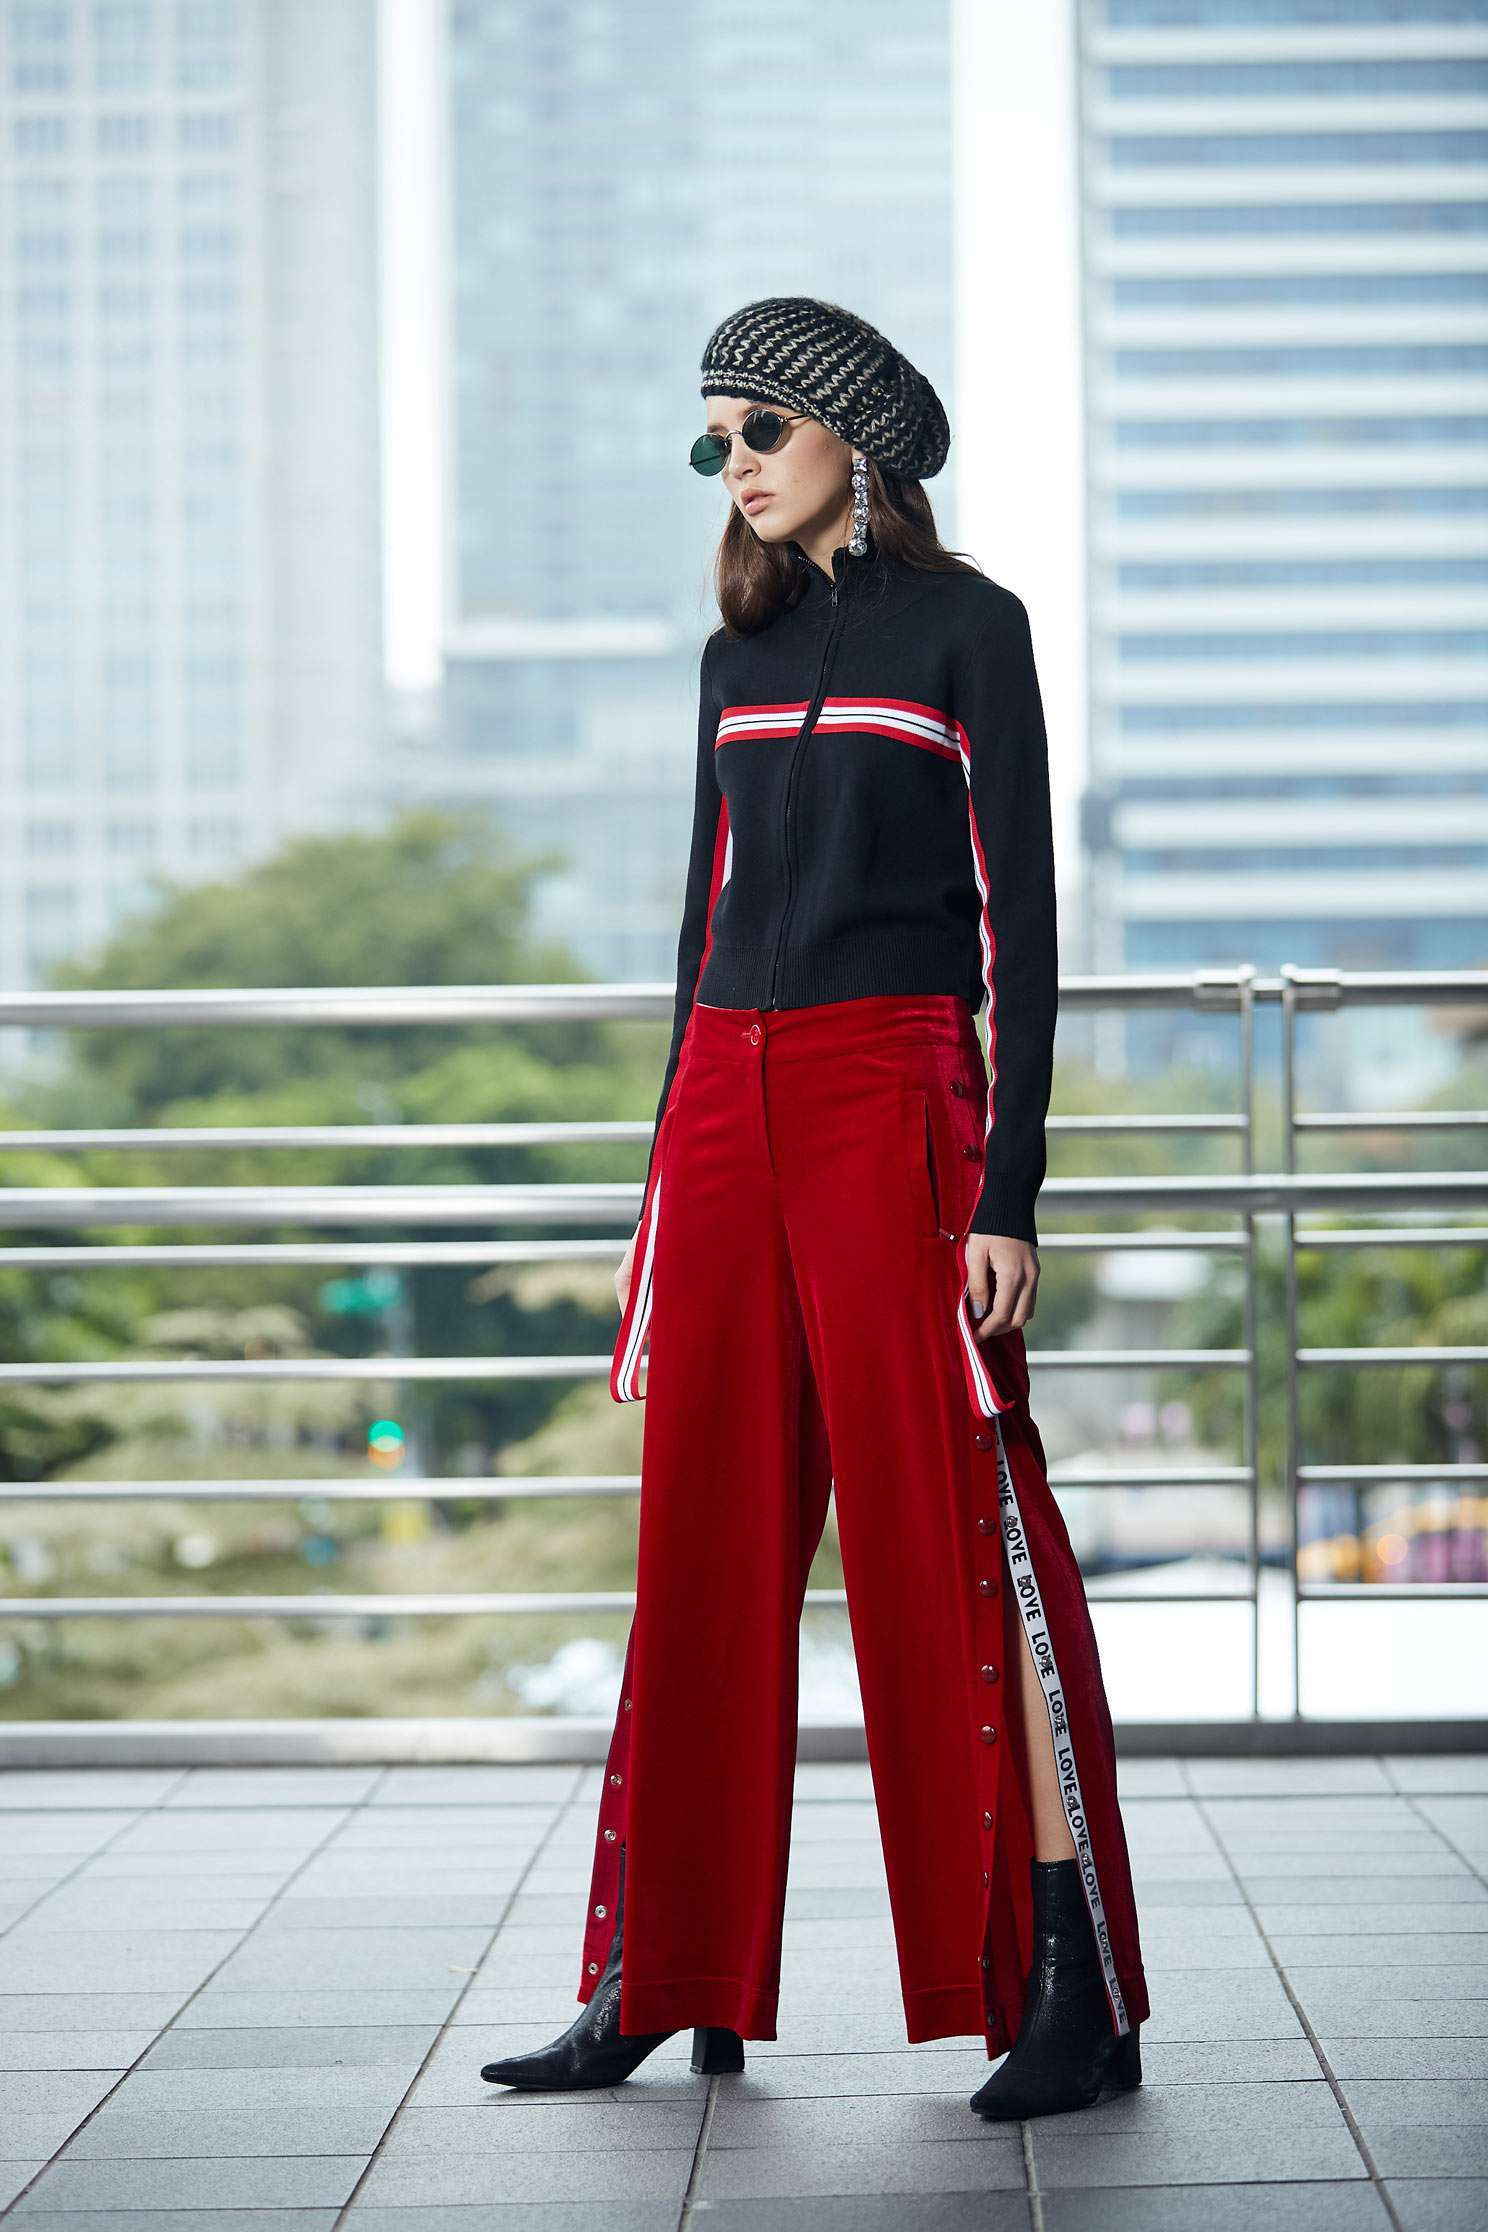 Wide leg pants with side-buckle design